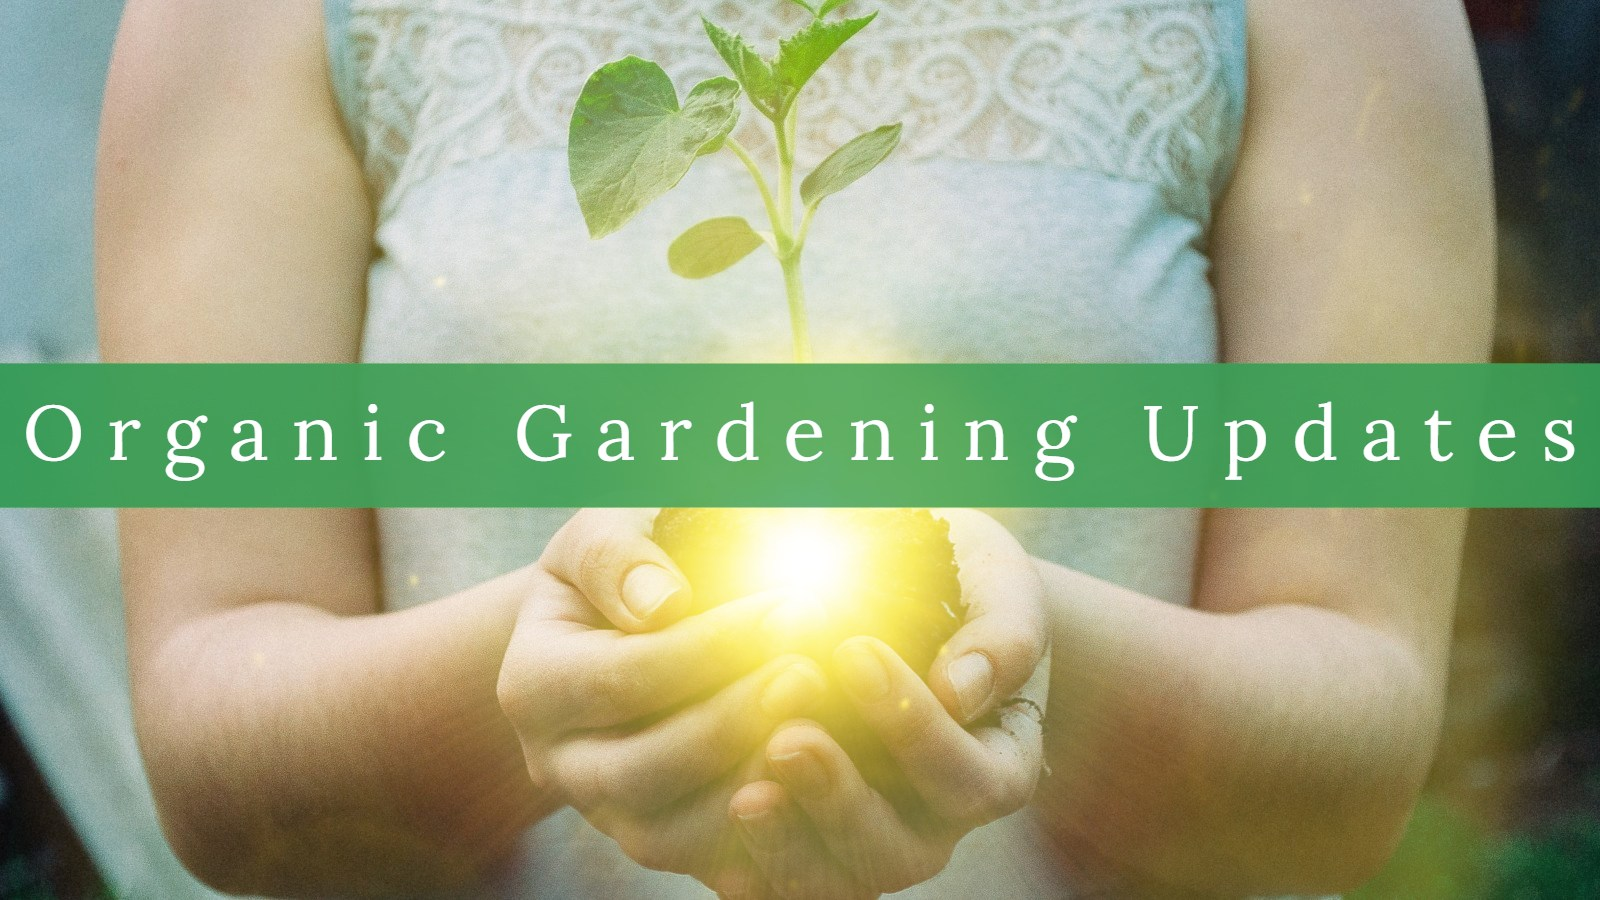 Organic Gardening Updates with light